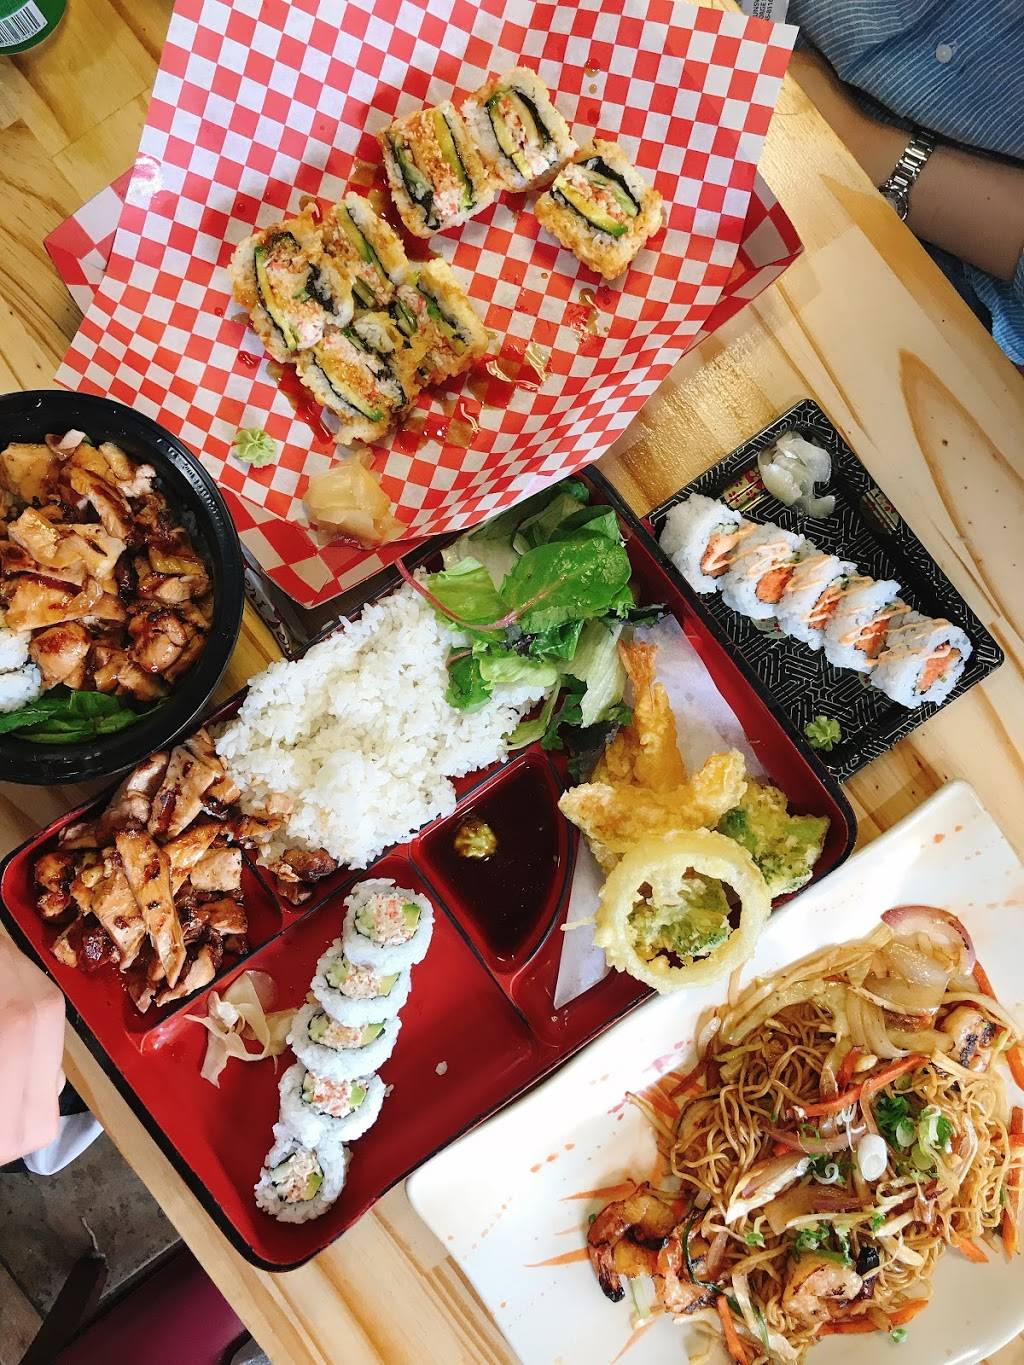 Teri Teri Japanese Restaurant | restaurant | 3415 Bergenline Ave, Union City, NJ 07087, USA | 2015529375 OR +1 201-552-9375